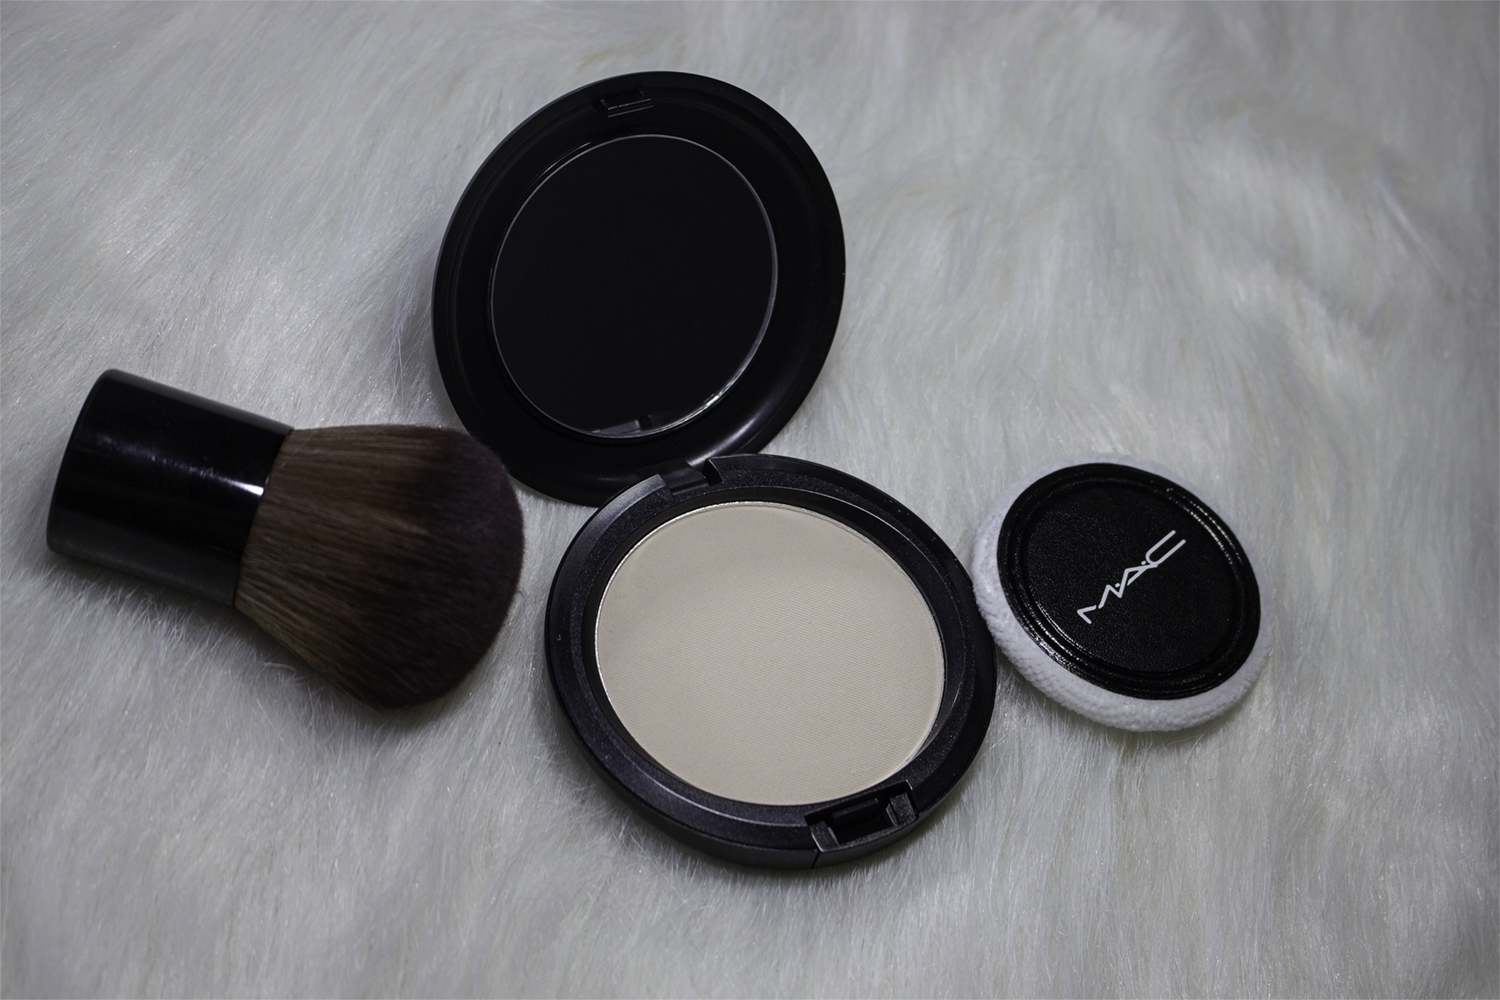 a close up picture of mac cosmetics lot powder that lays on a fluffy rug